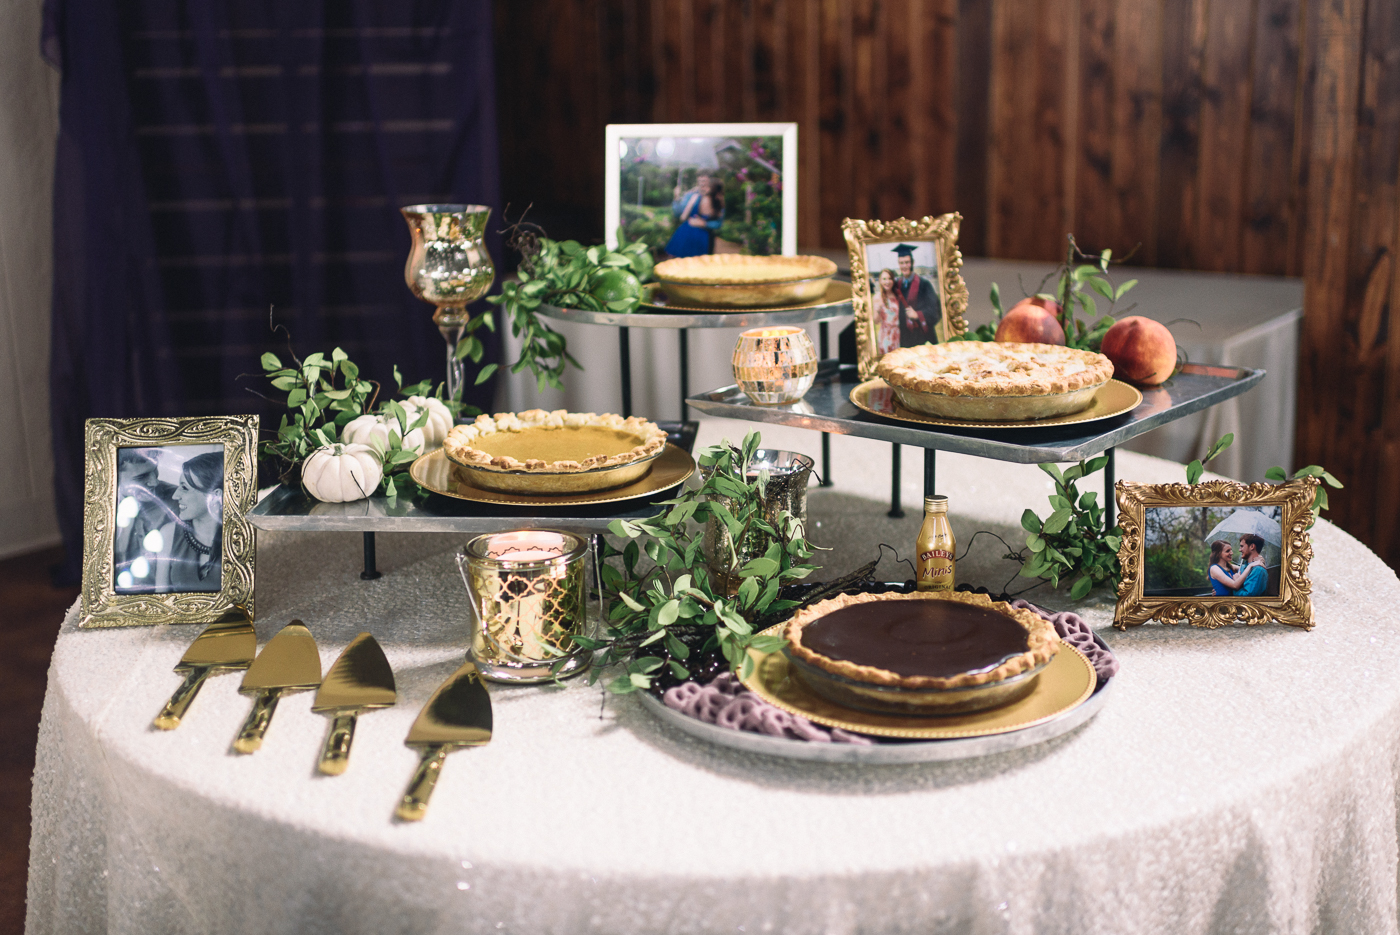 Wedding reception pies dessert table pretty pictures peach cobbler key lime chocolate